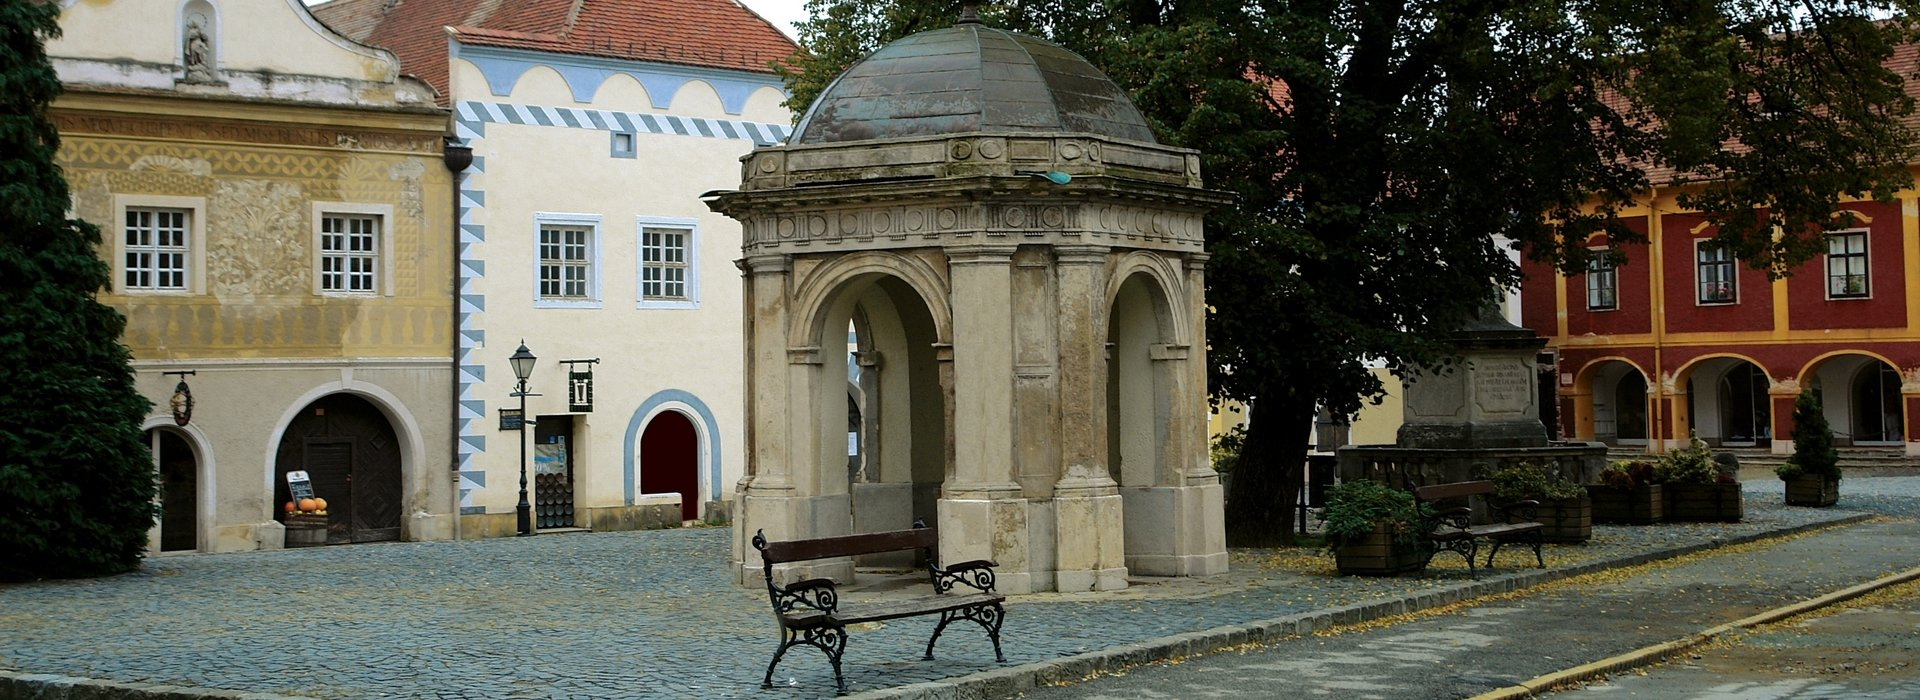 Things to do in Kőszeg